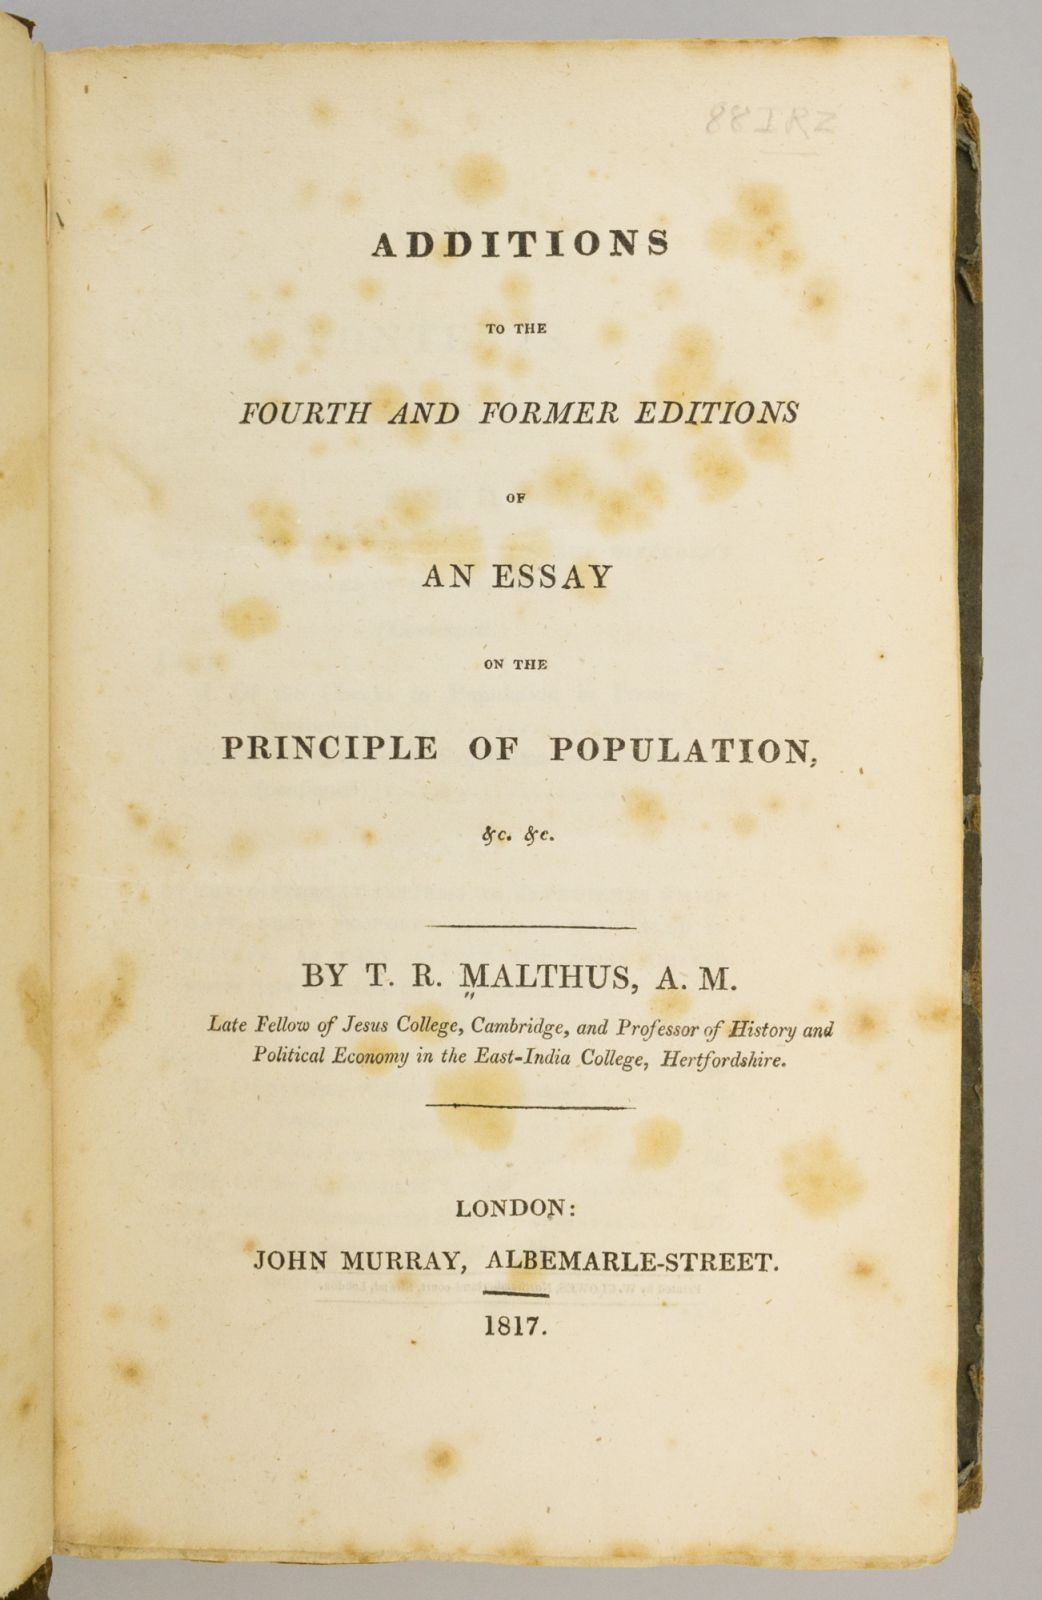 Pirages malthus additions to essay on population 1817